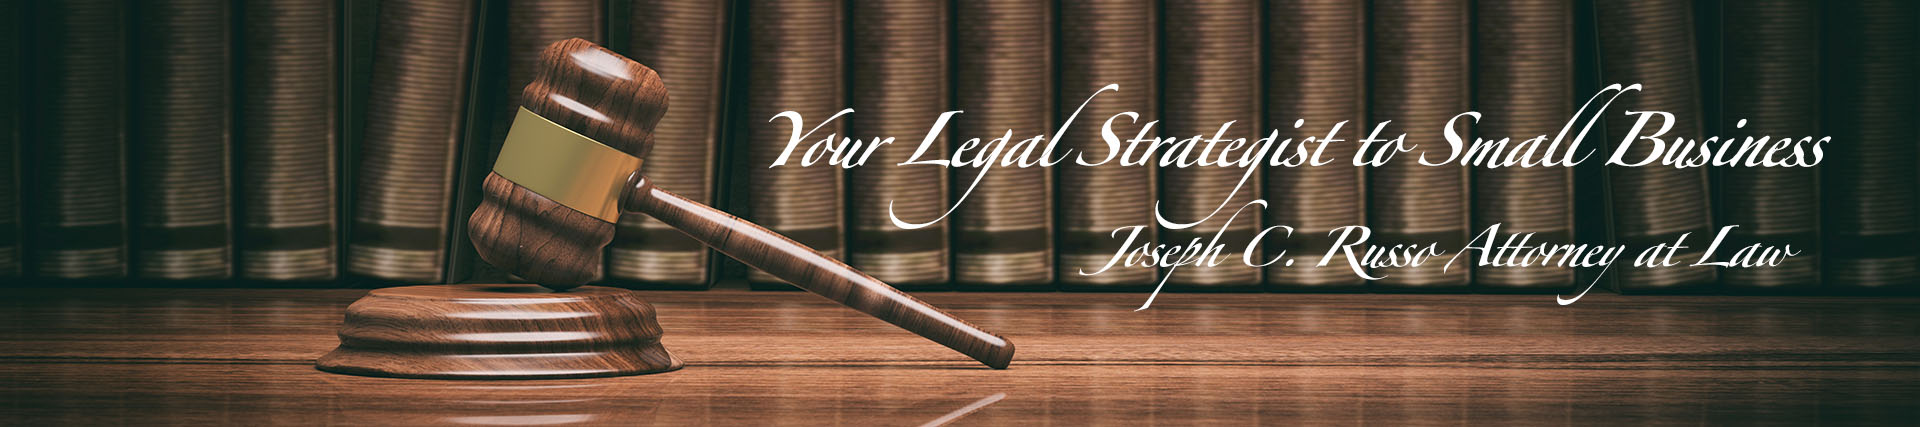 Attorney At Law Tampa